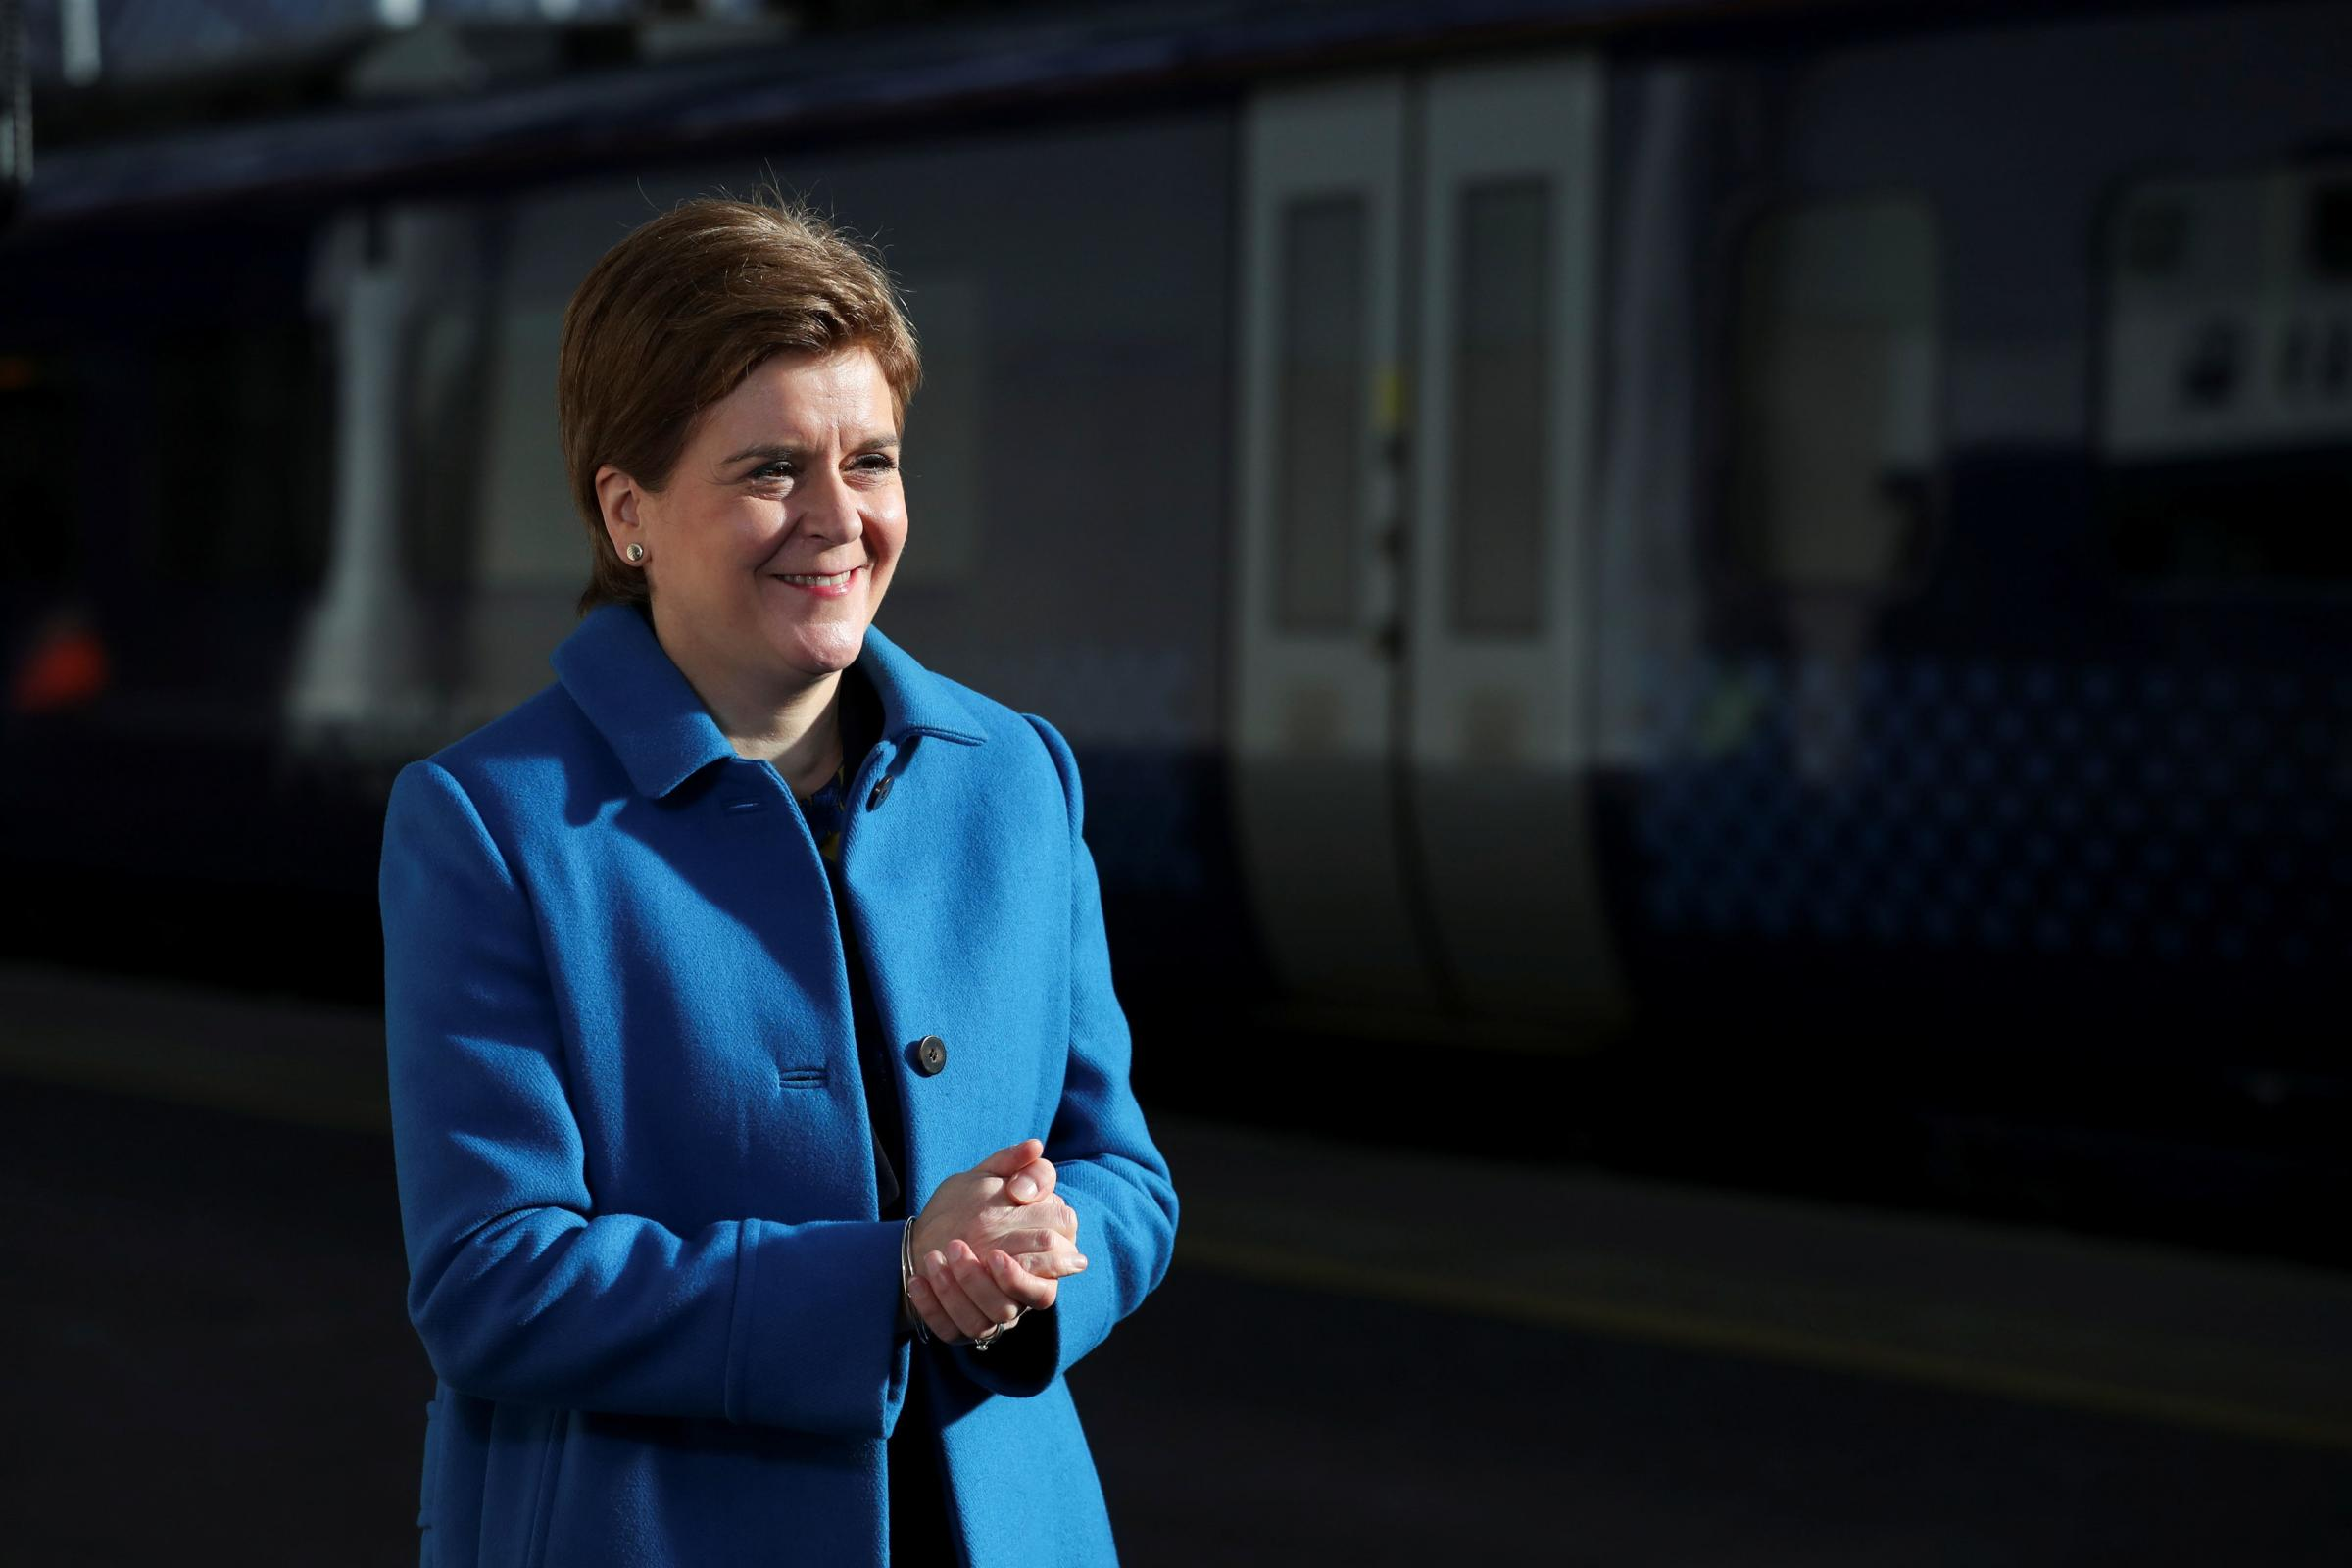 The SNP have left me just like the Labour party left my father